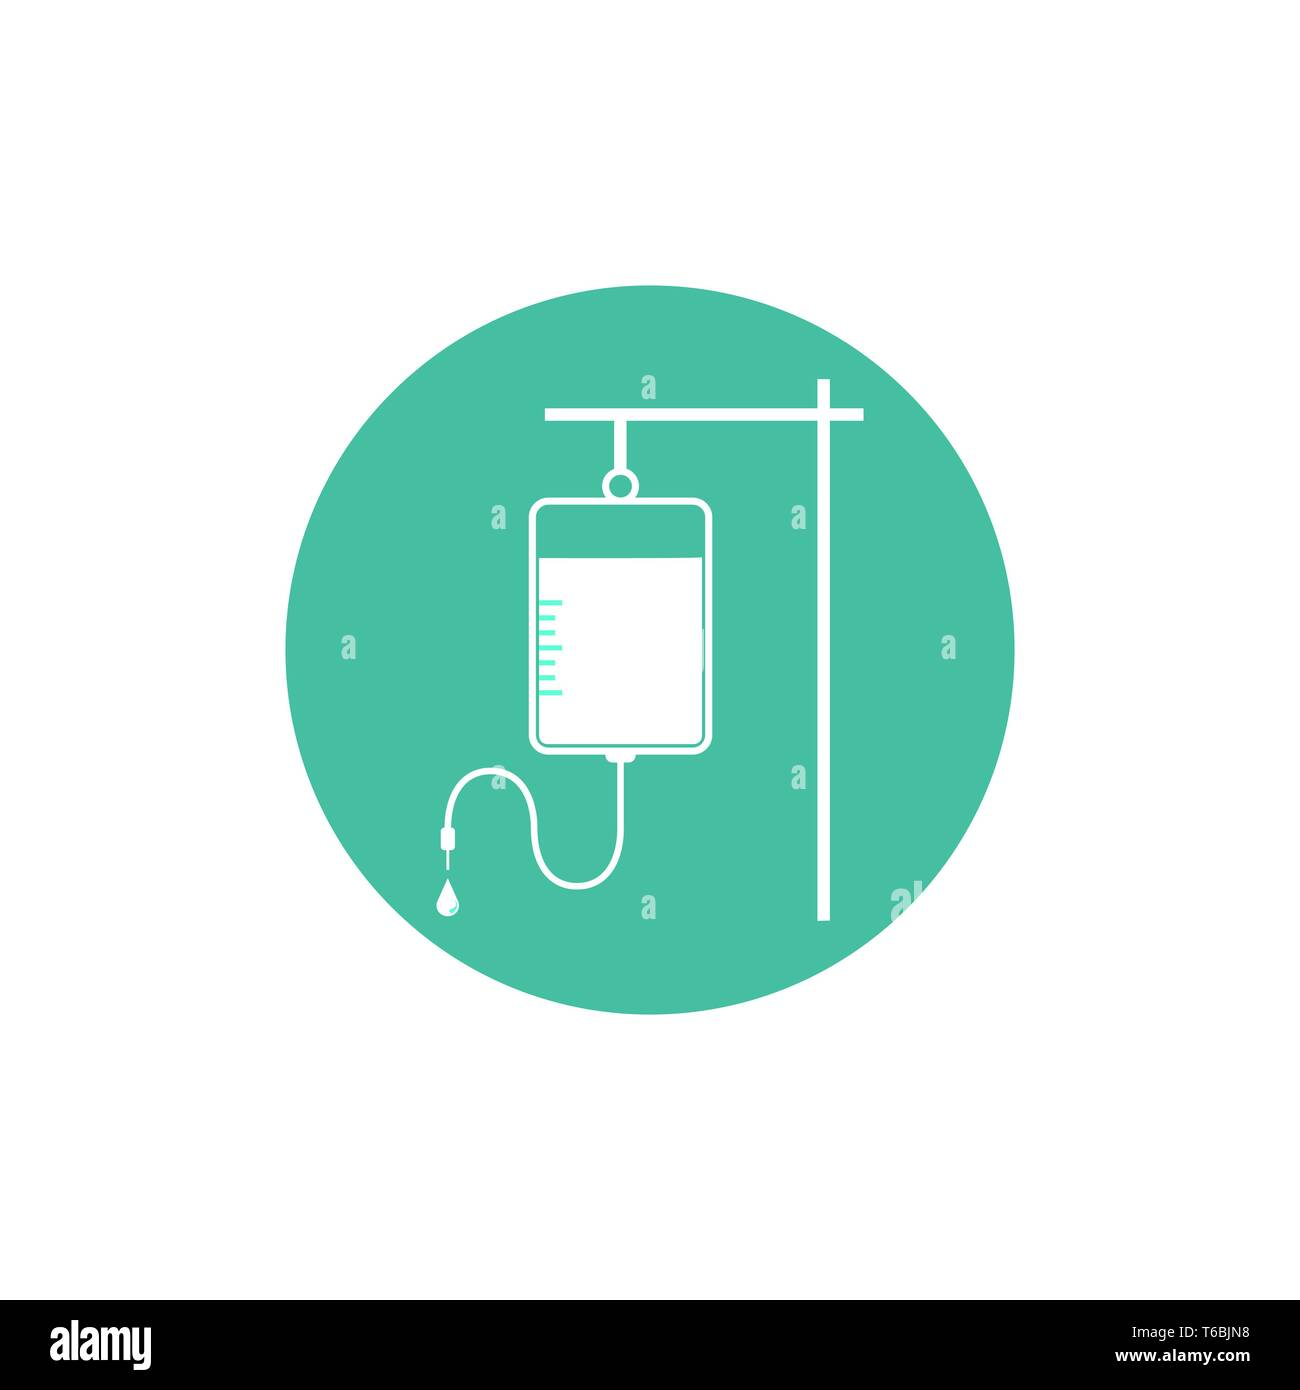 Vector illustration, flat design. IV bag icon - Stock Vector